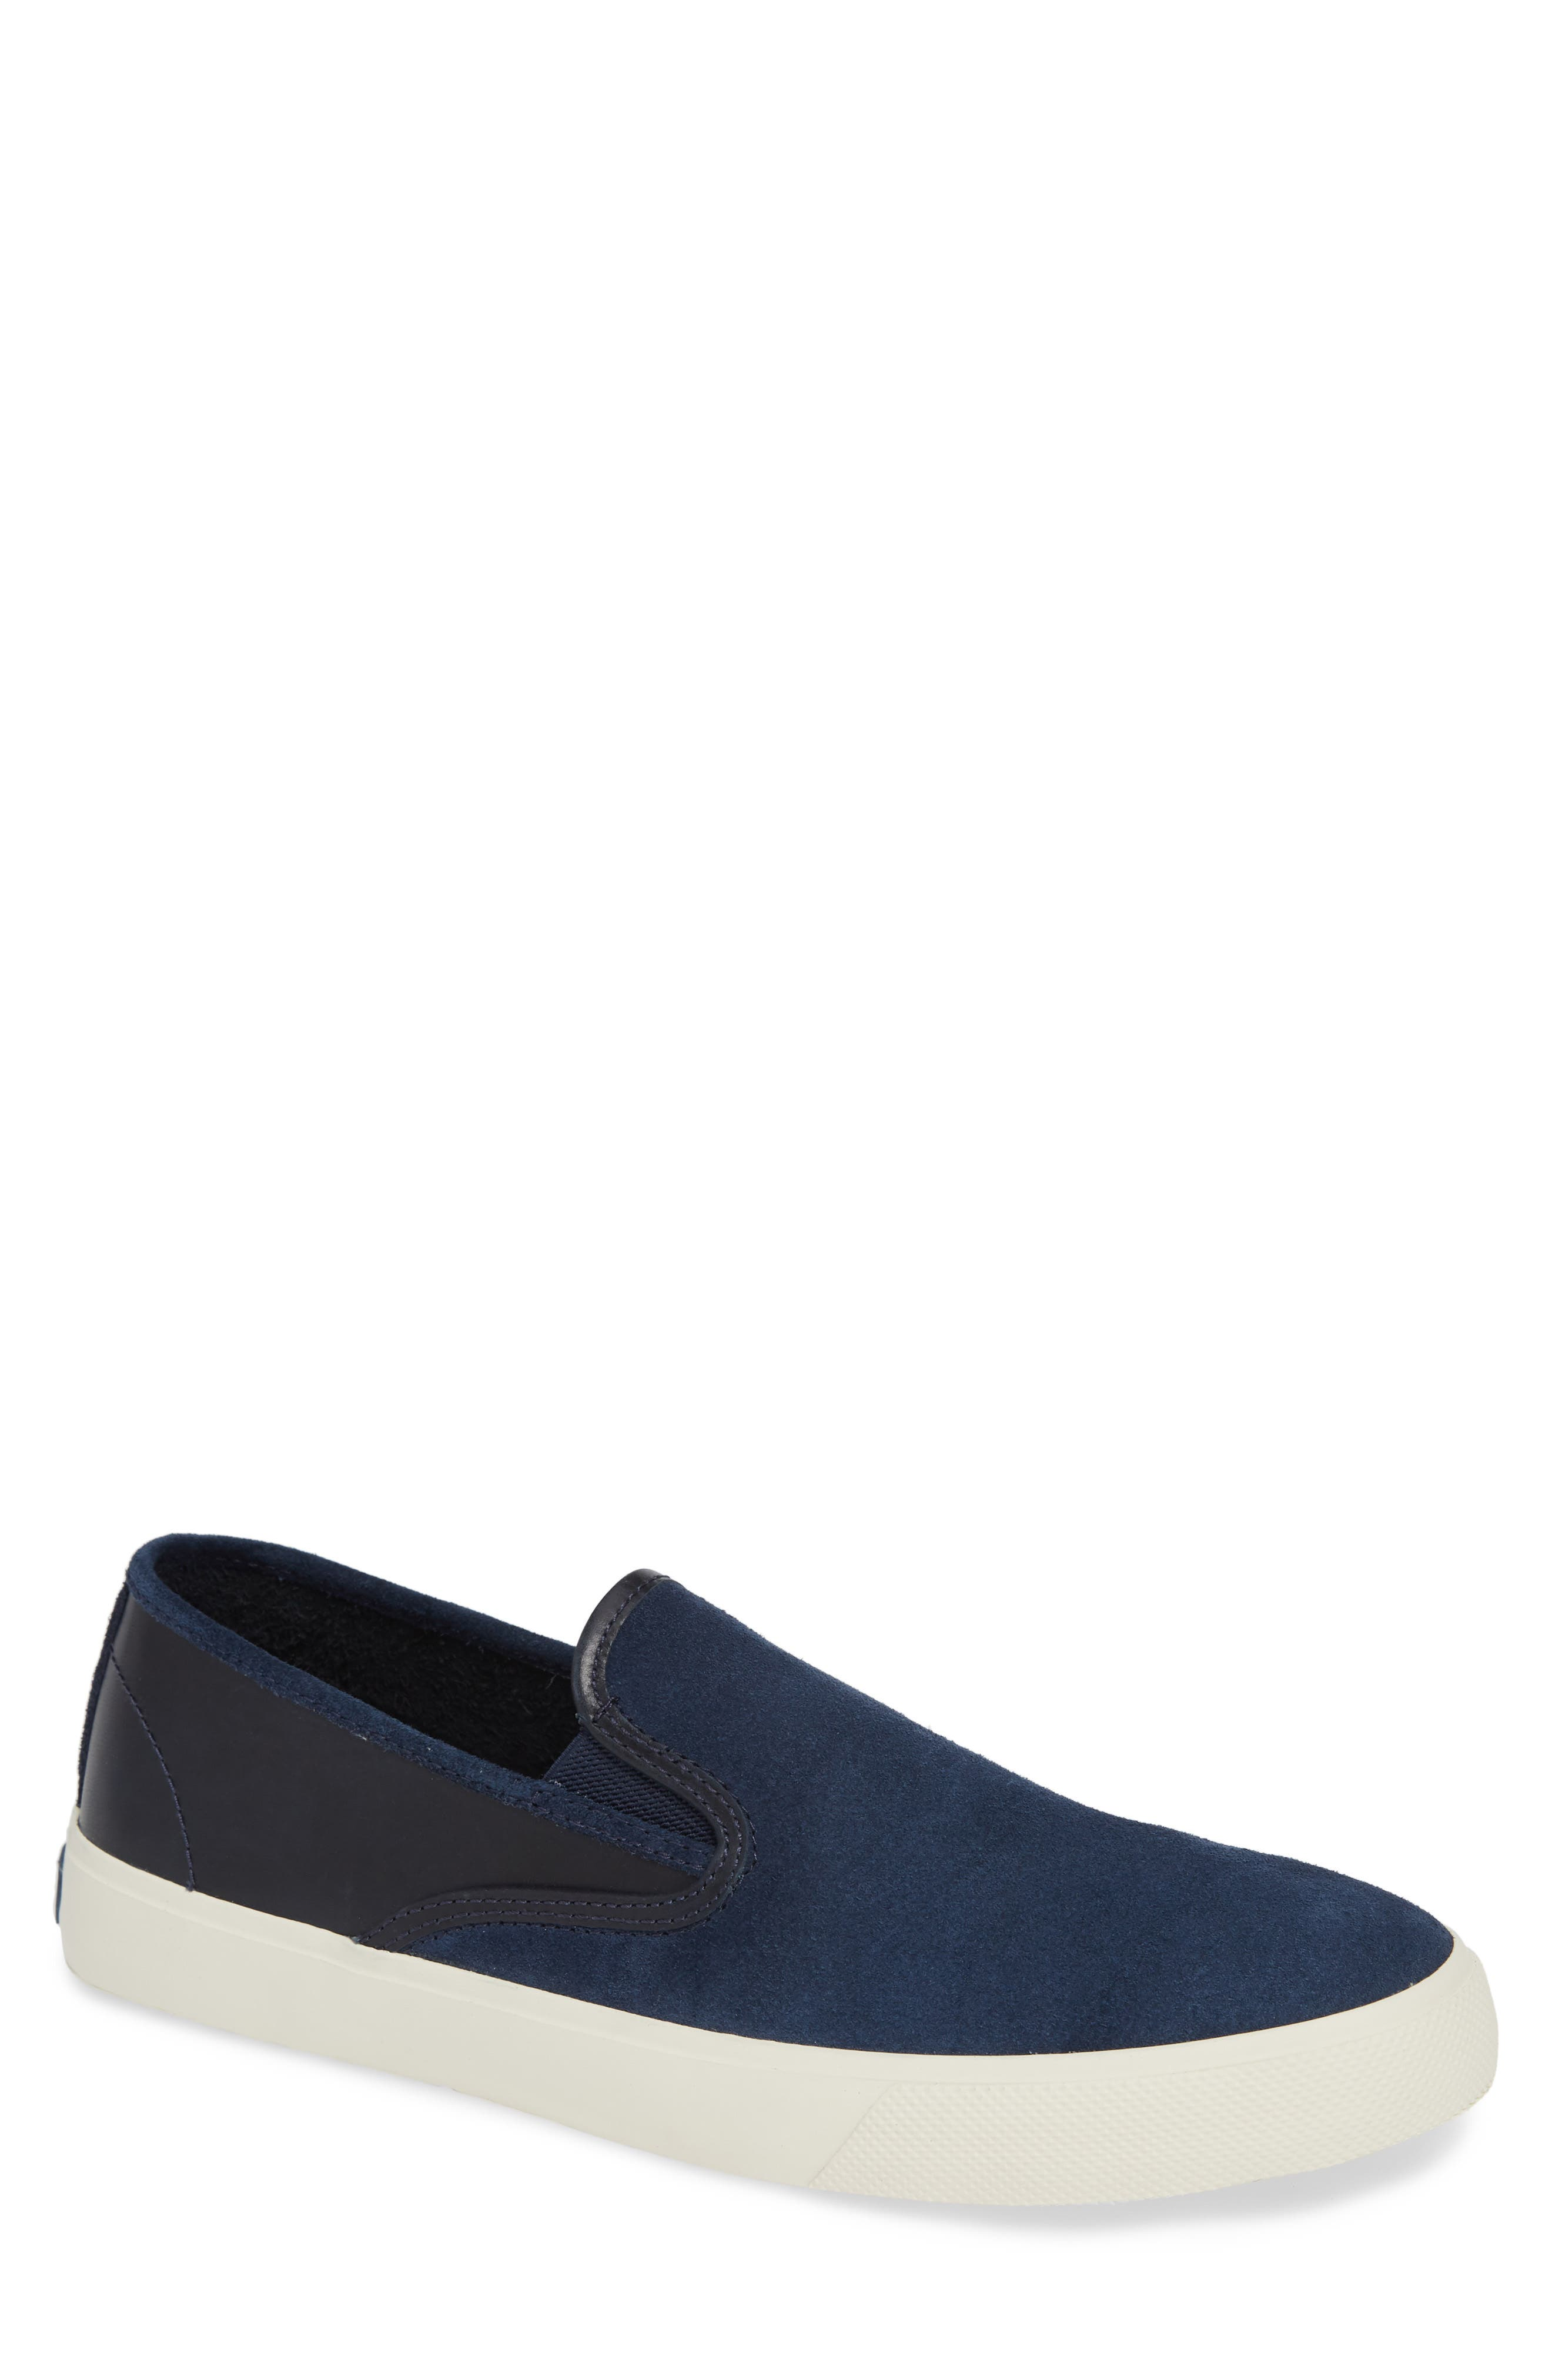 Captains Slip-On,                         Main,                         color, NAVY